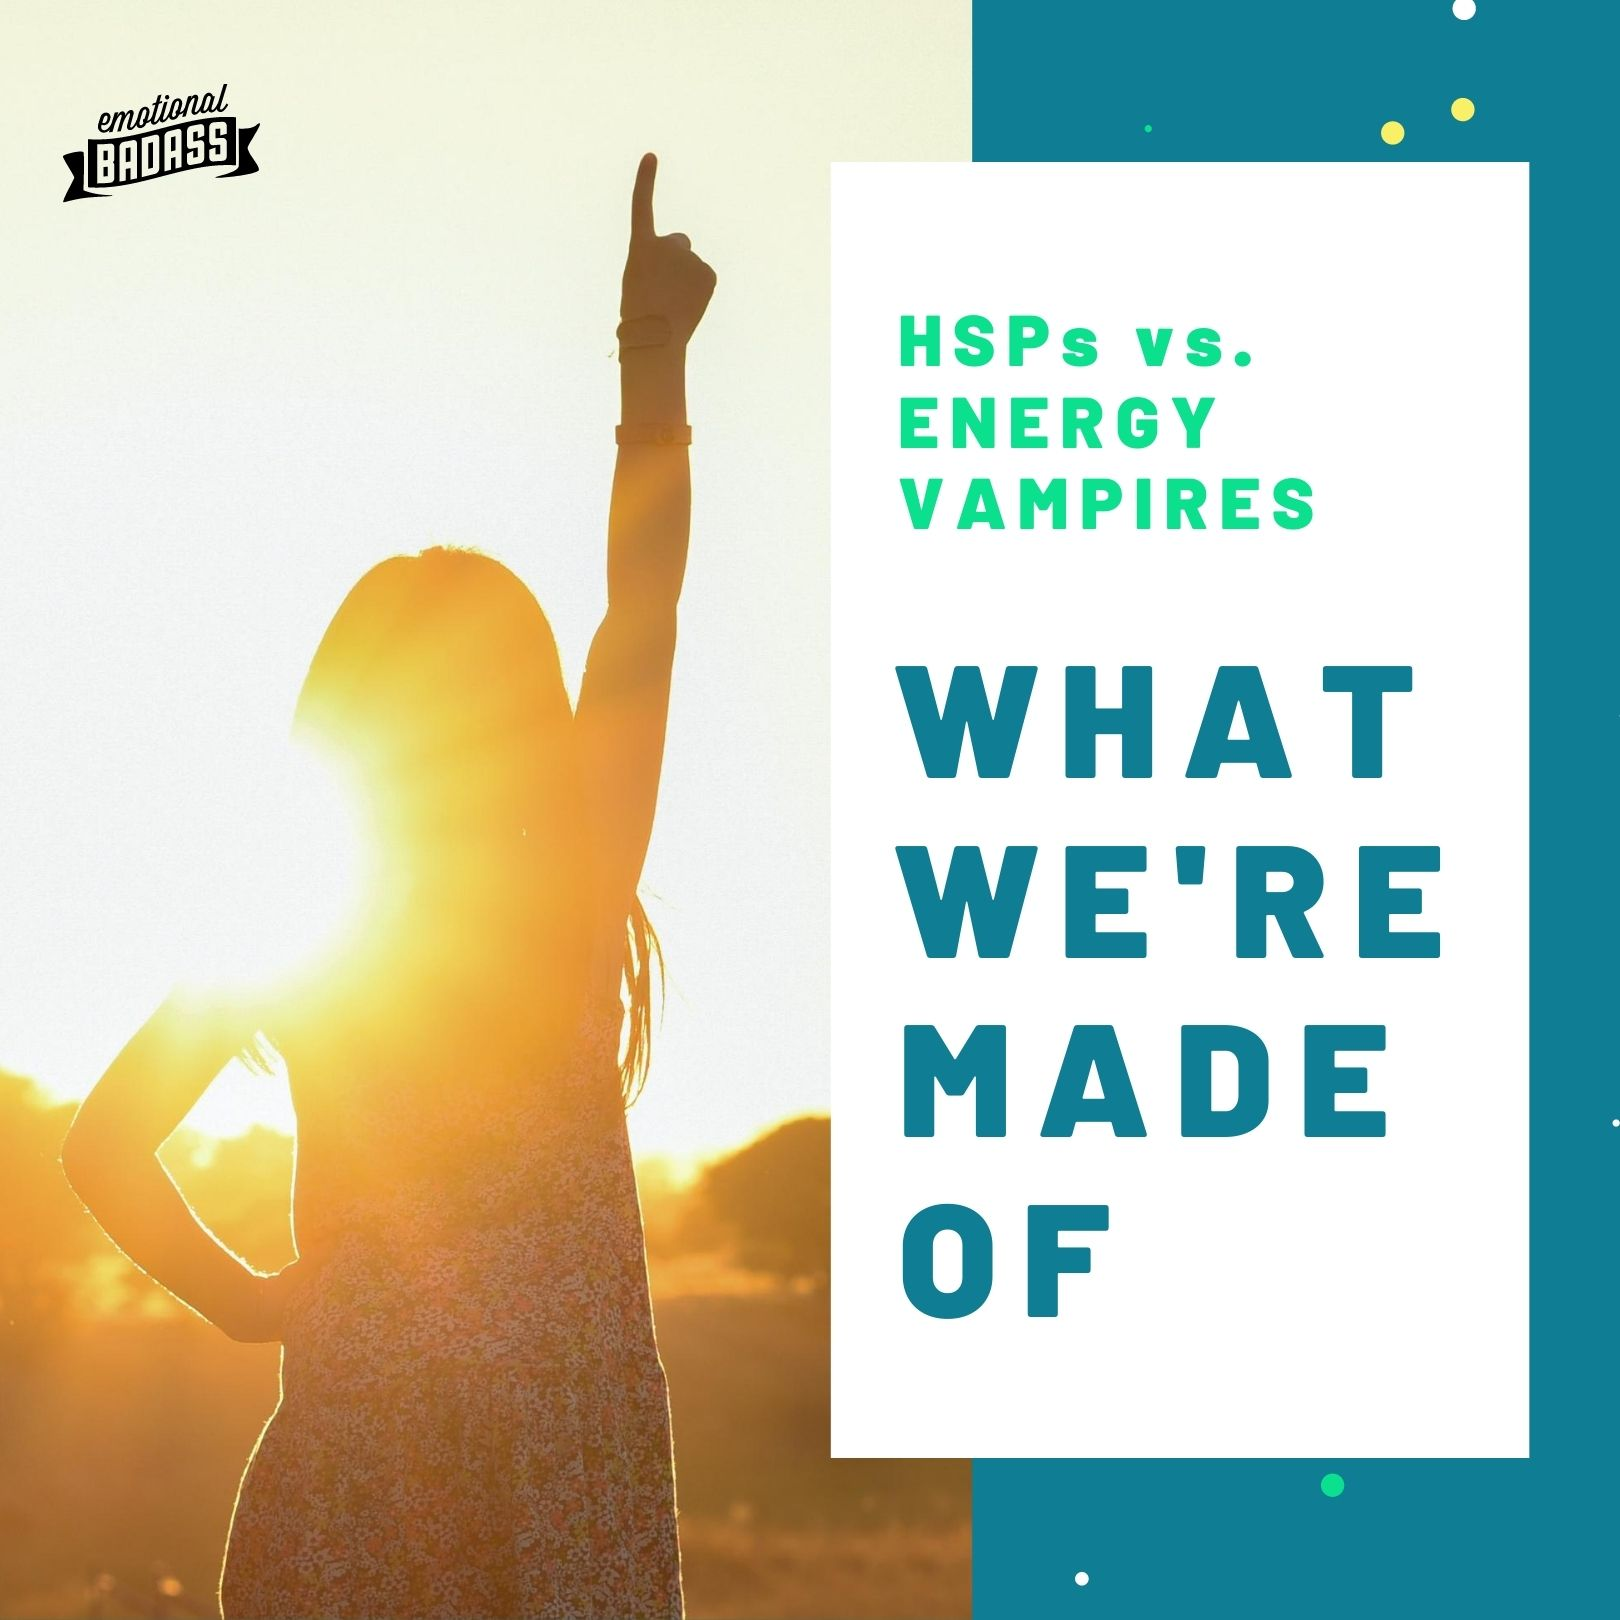 HSPs vs. Energy Vampires, What we're made of